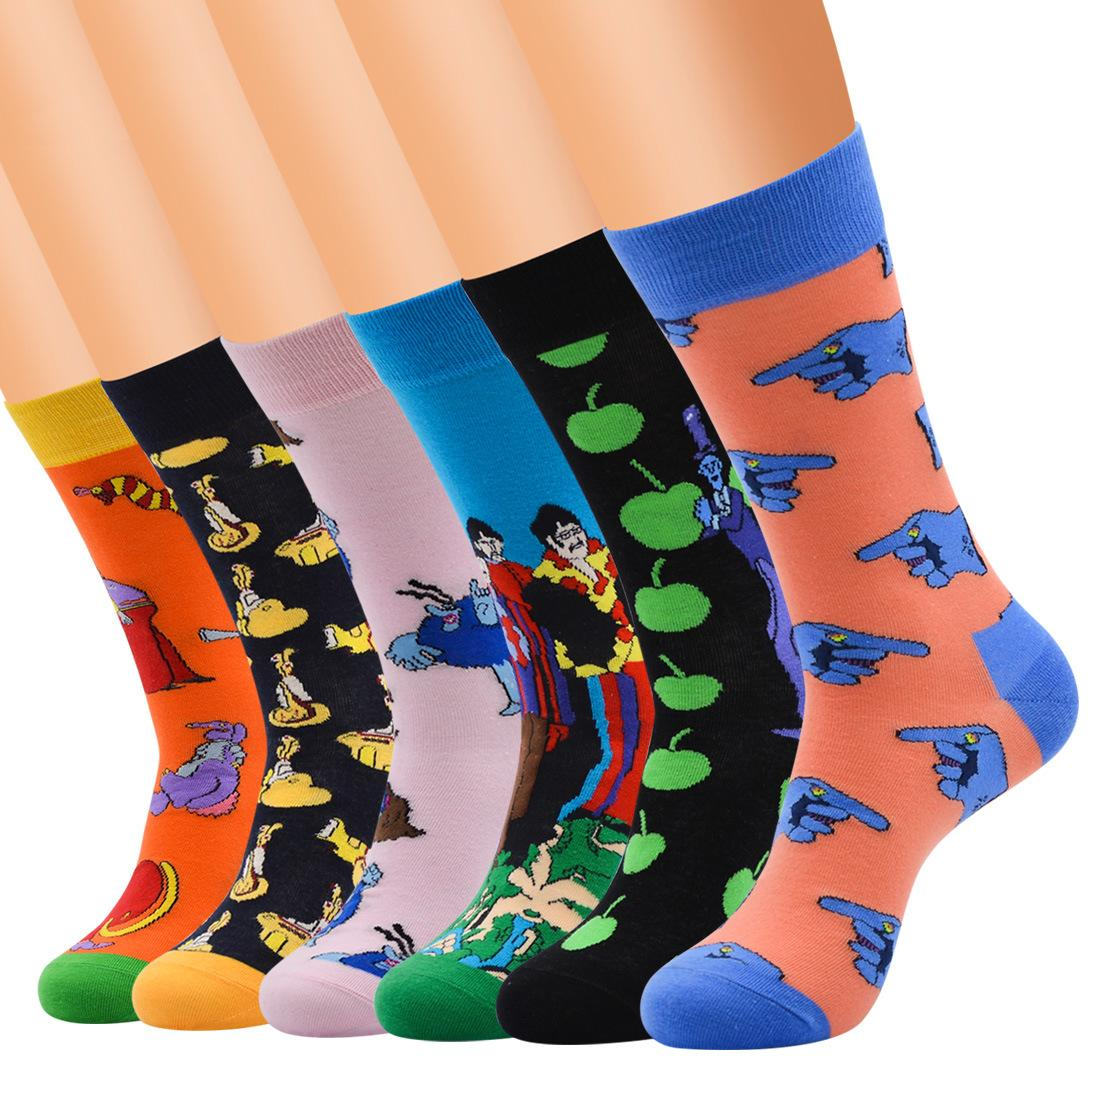 6pairs Men Fun & Funky Colorful Fashion Novelty Crazy Fancy Casual Combed Cotton Colorful Patterned Dresscrew Socks